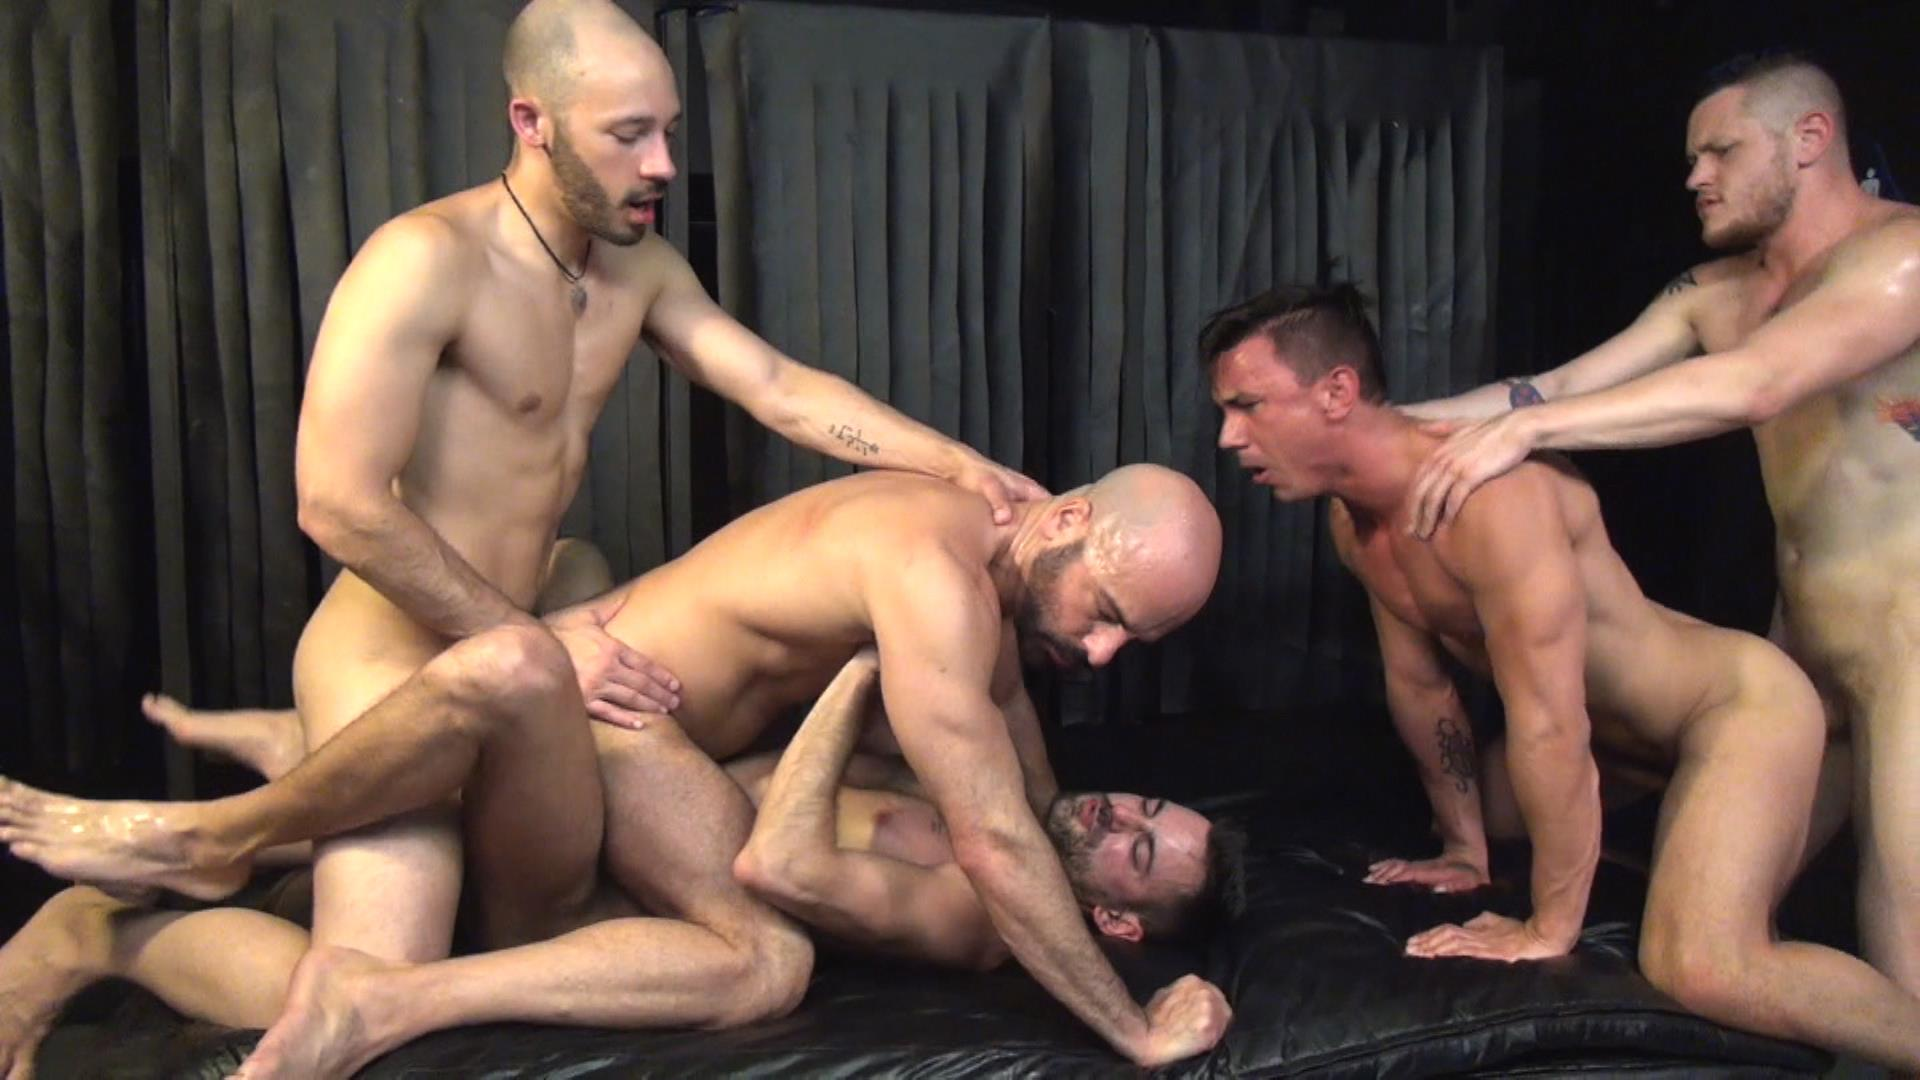 Raw Fuck Club Blue Bailey and Dylan Strokes and Adam Russo and Dean Brody and Jay Brix Bareback Orgy Amateur Gay Porn 7 Adam Russo Ge